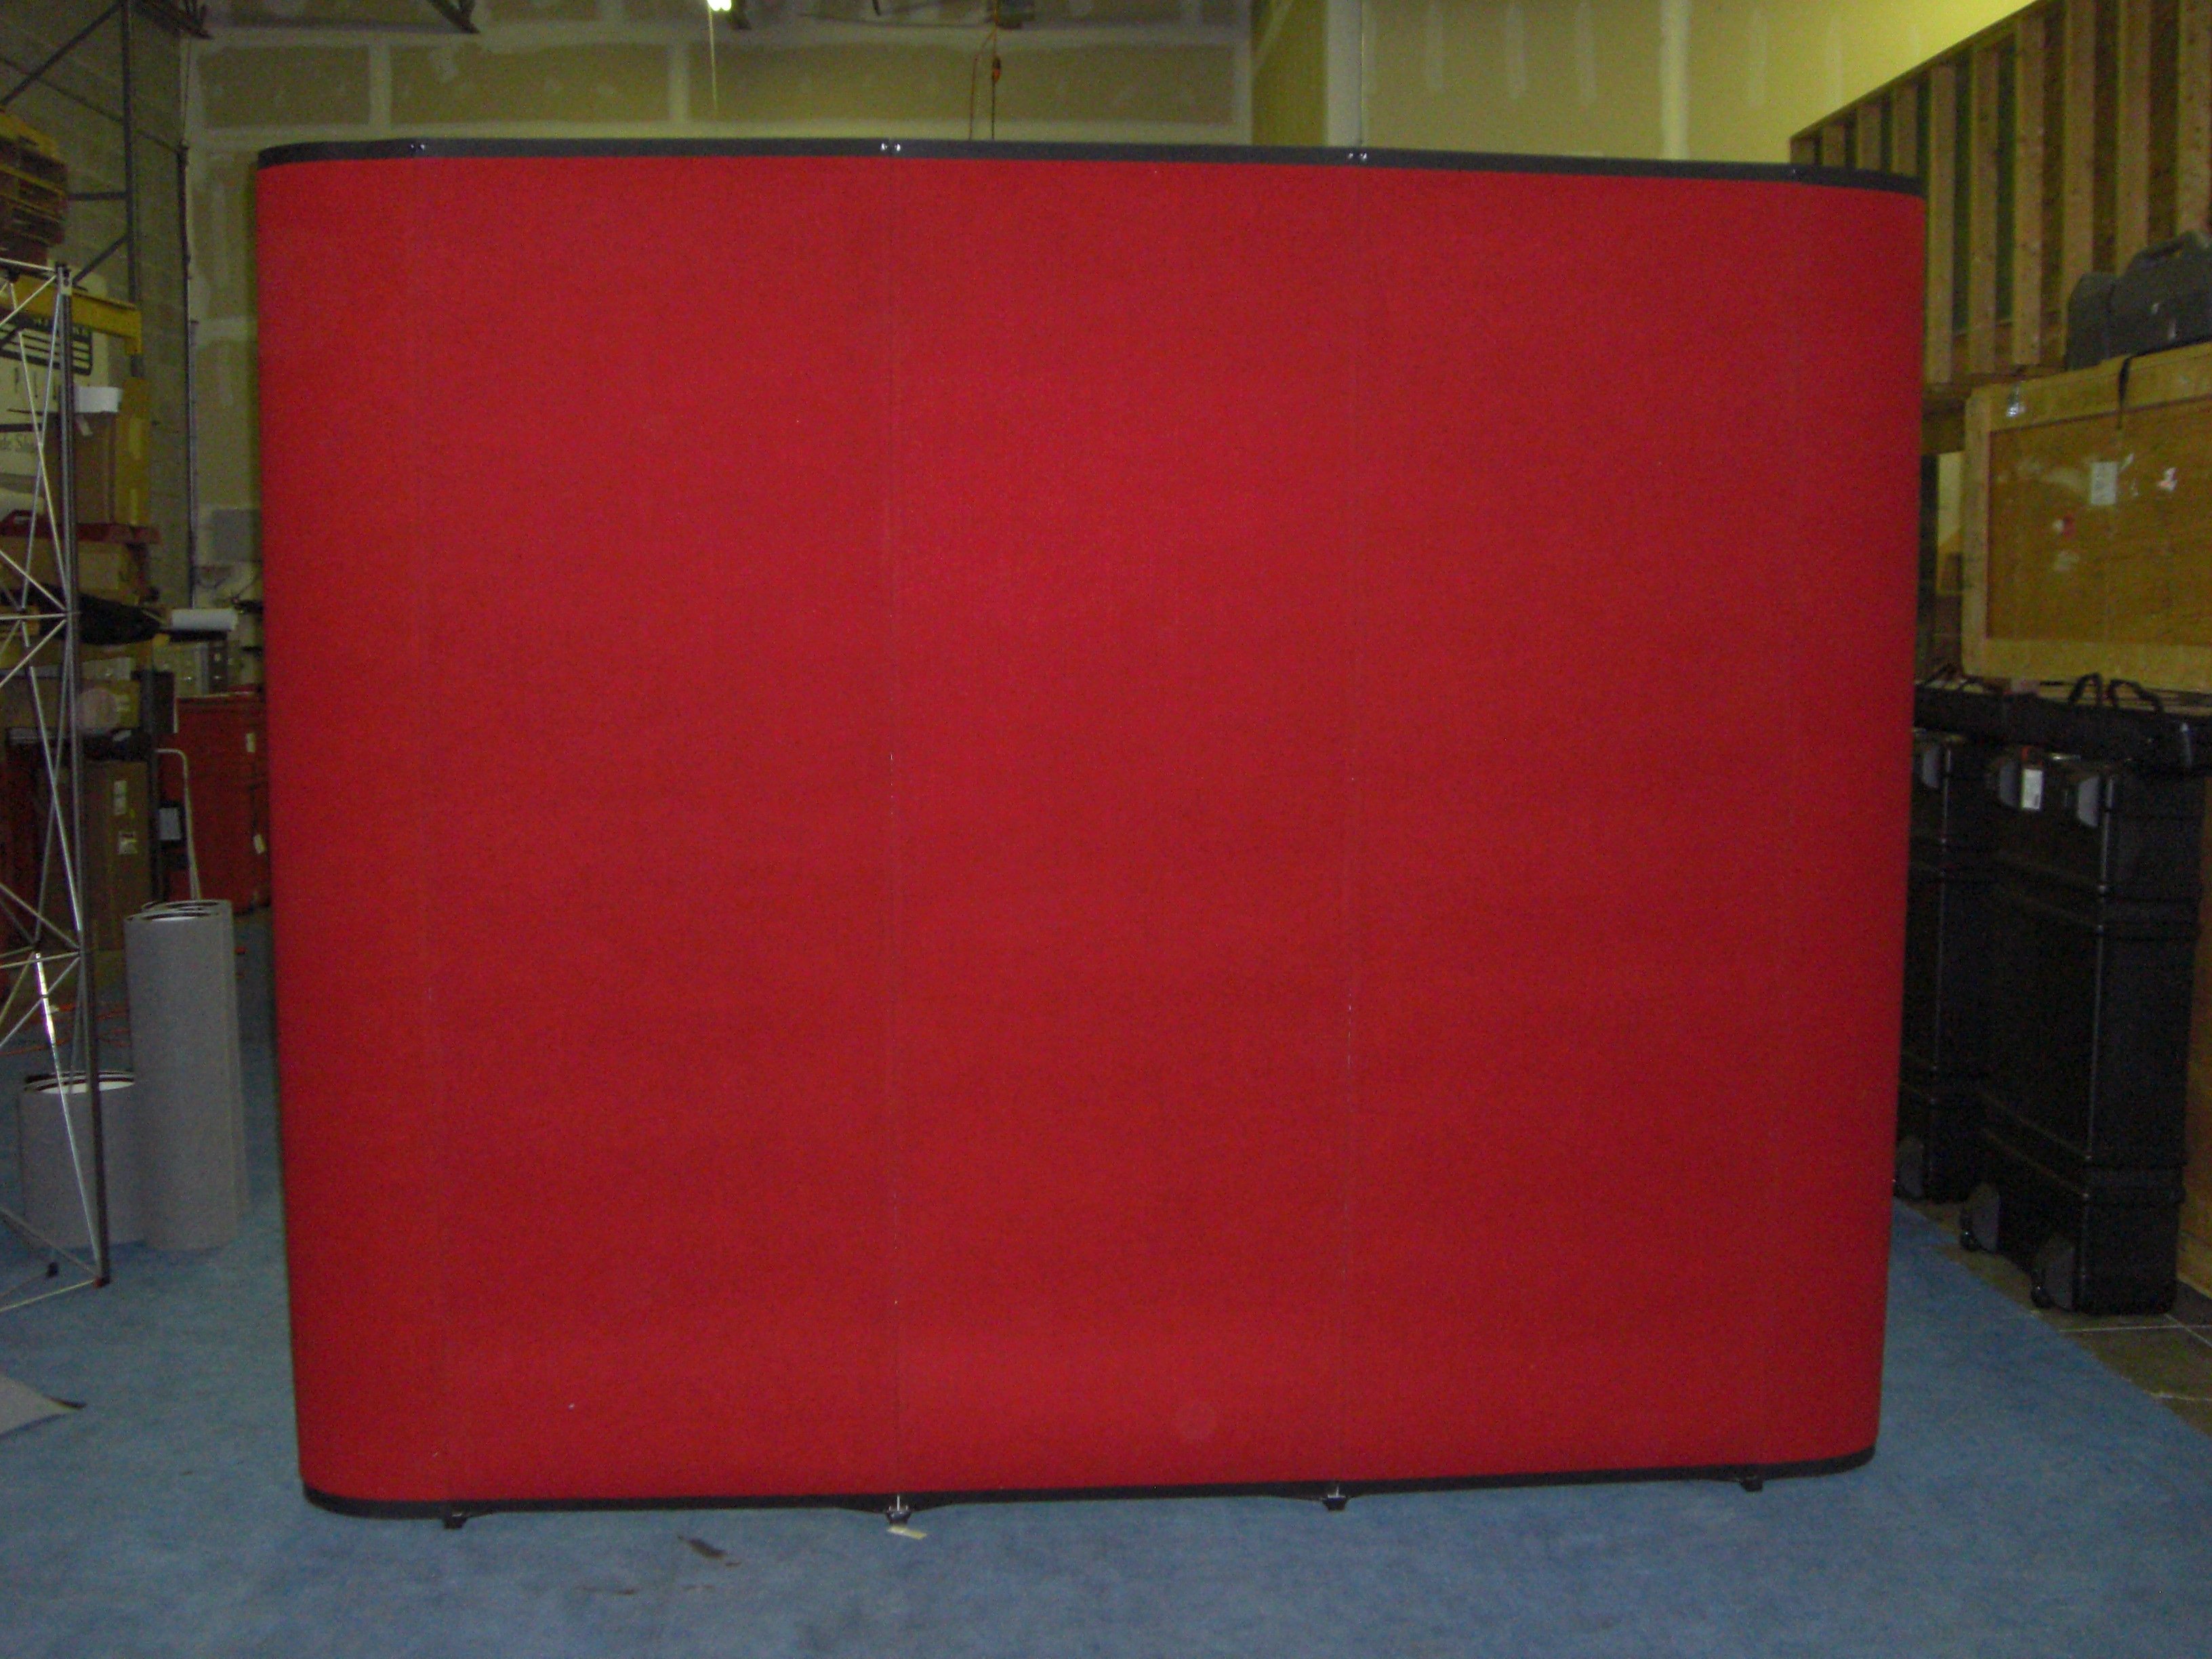 Nomadic 8x8 Flat Frame w/Red Fabric